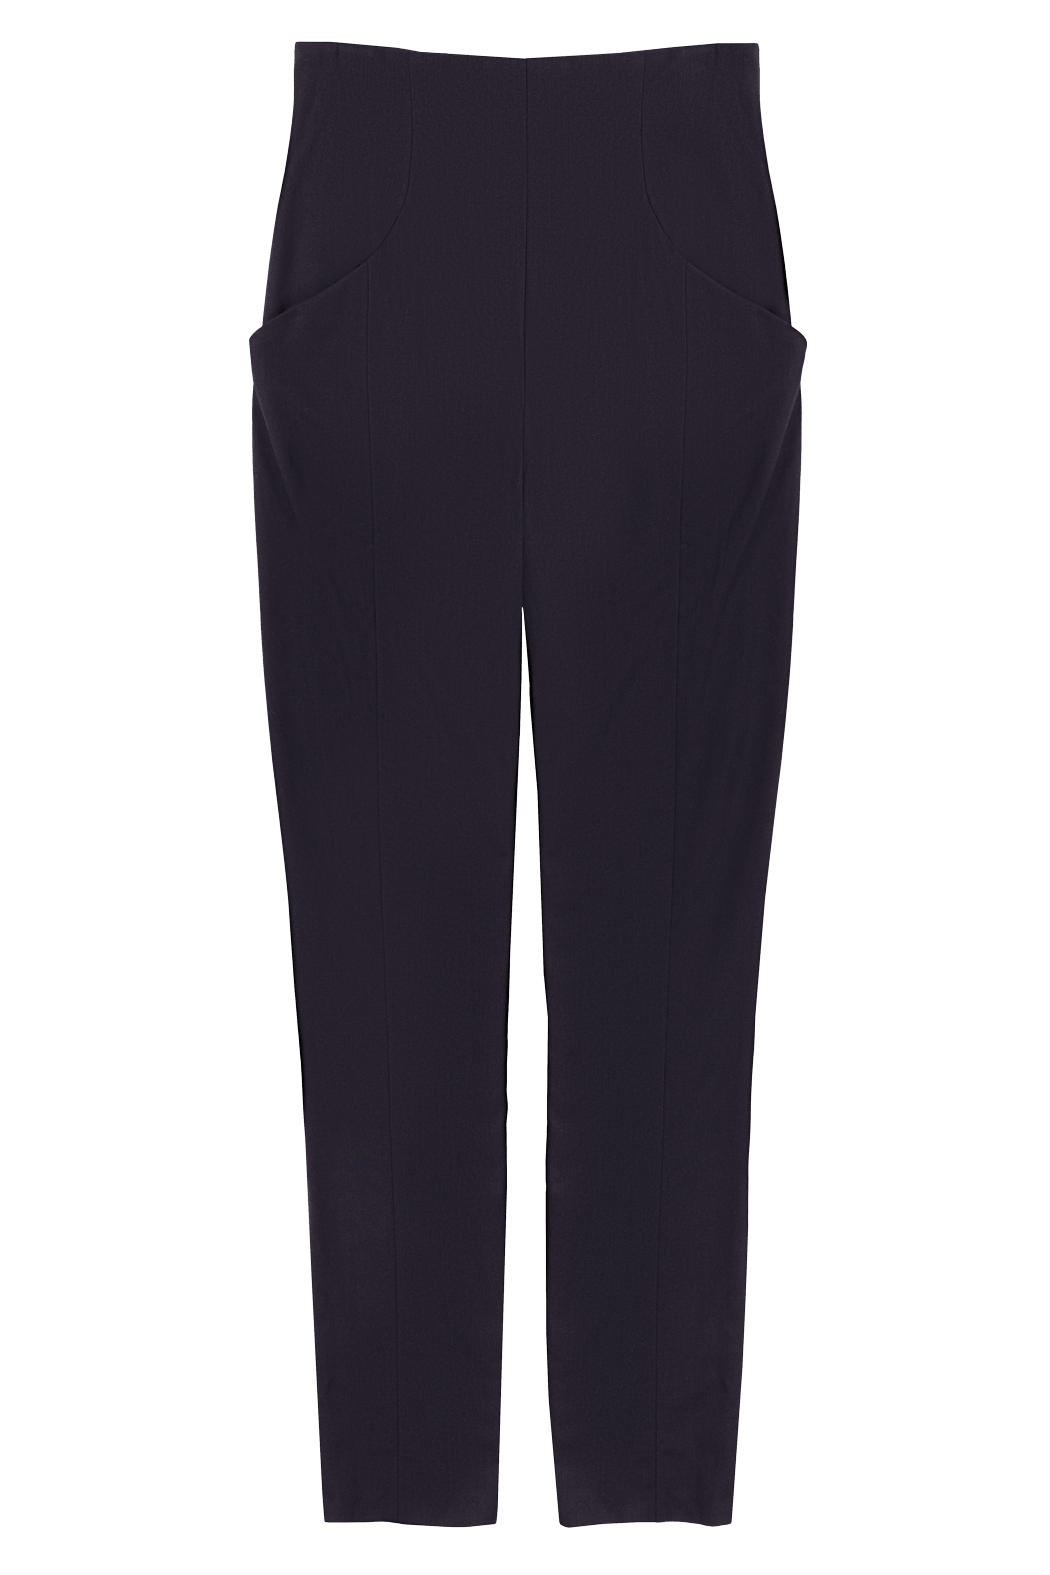 Black High Waisted Slim Tapered Pant Flat